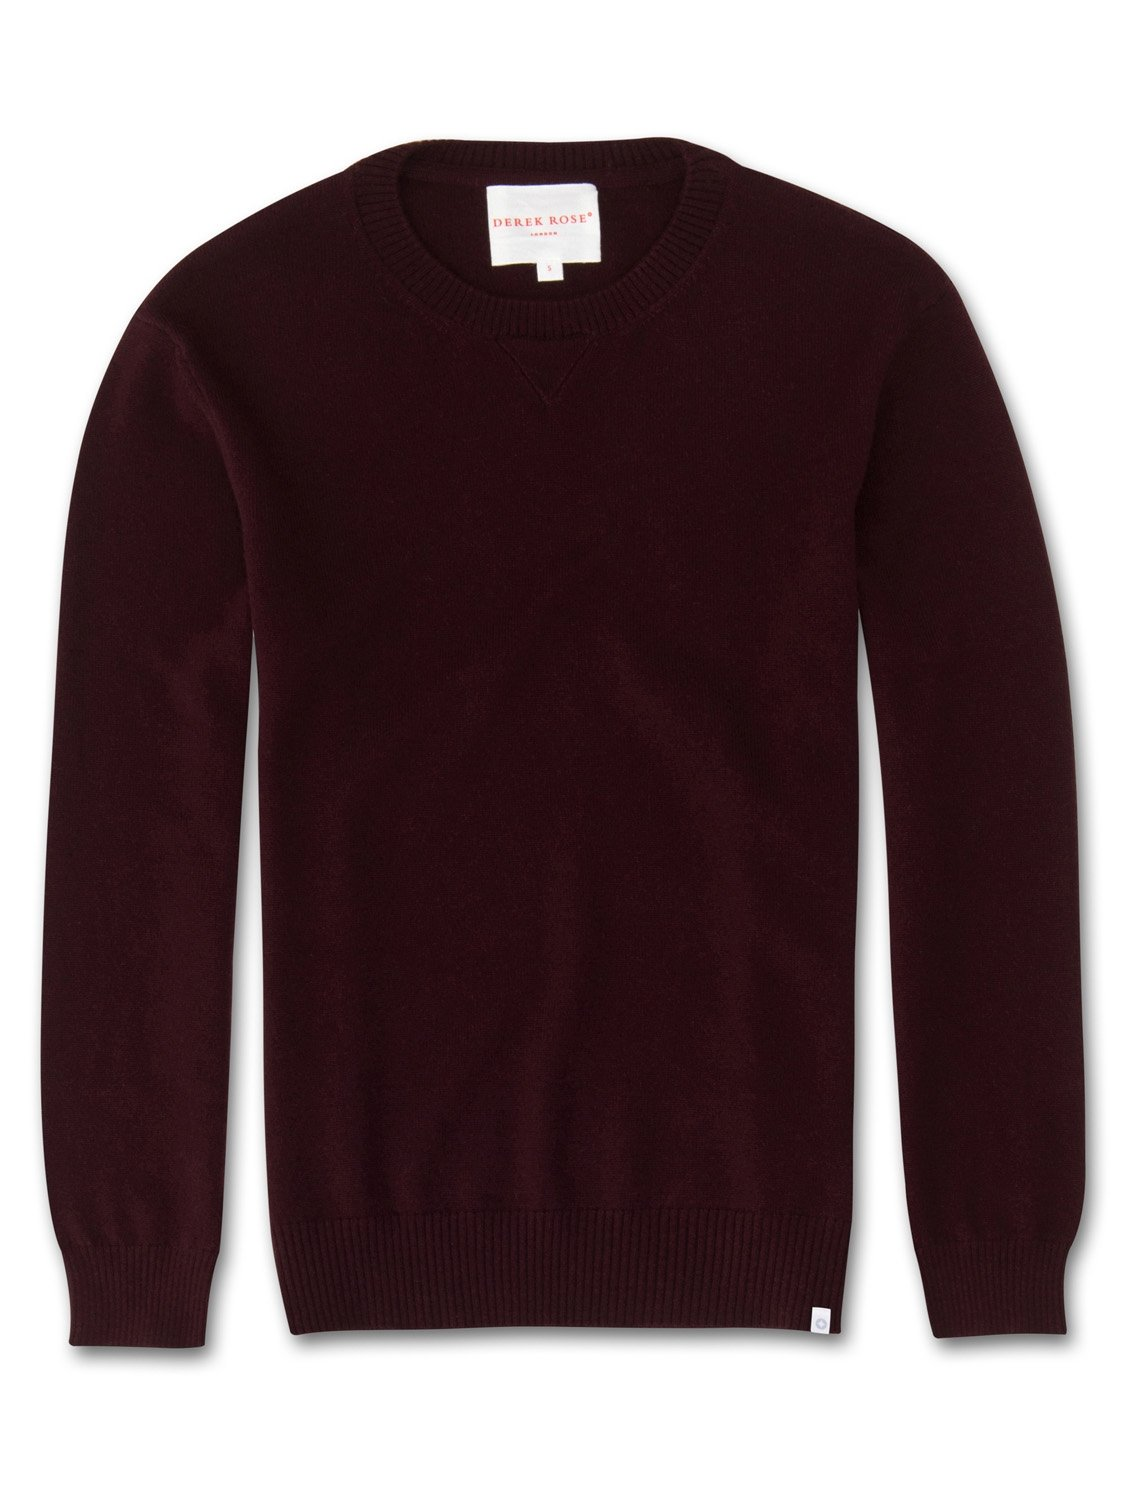 Women's Cashmere Sweater Finley Pure Cashmere Burgundy